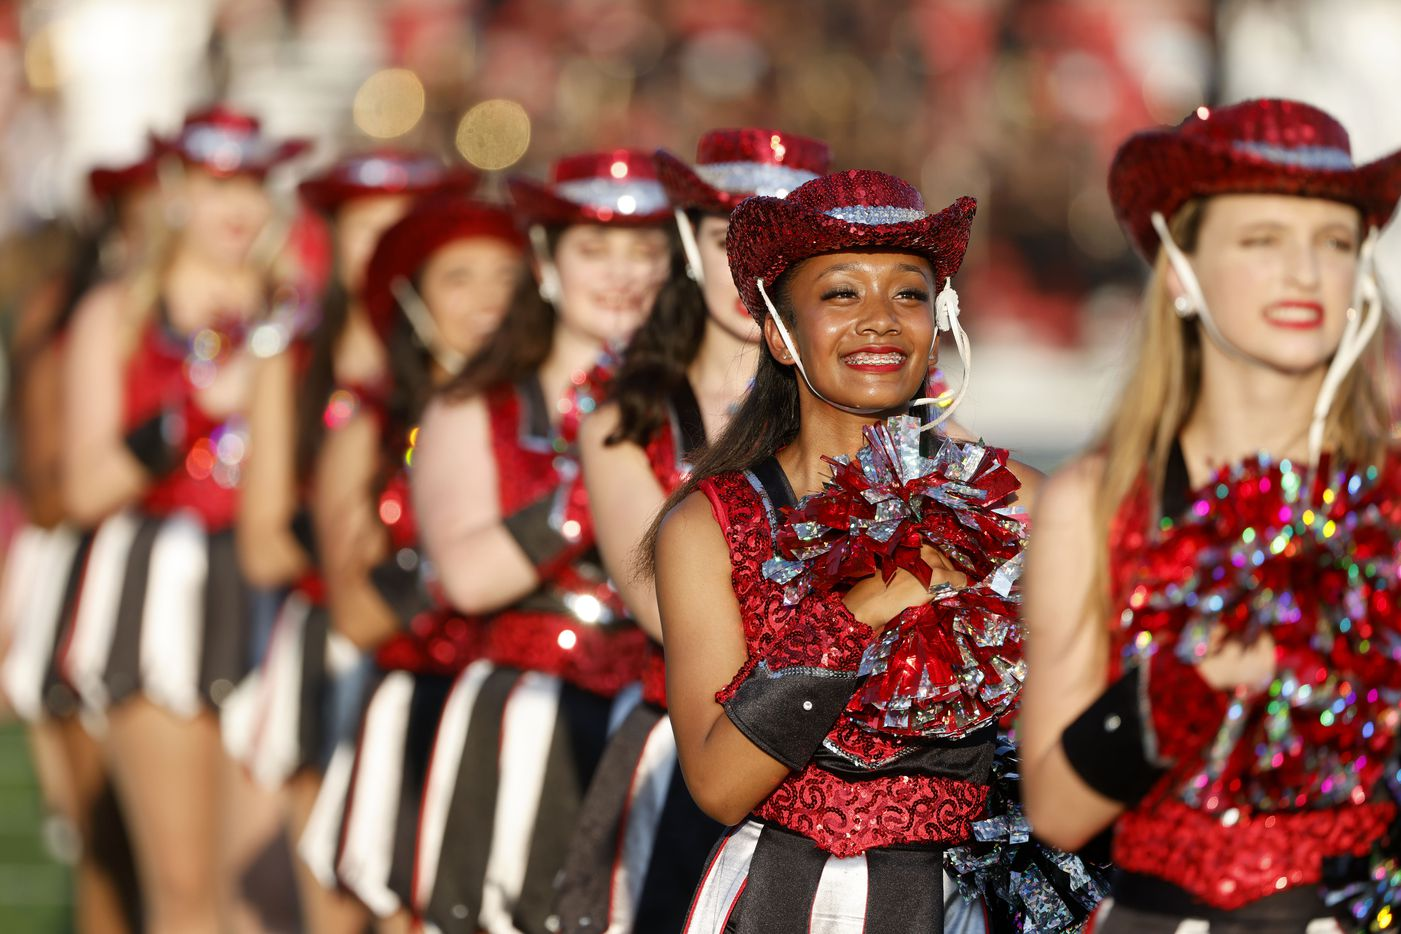 The Troy-Ann drill team of Euless Trinity performs prior to their their high school football game against Arlington Lamar, in Bedford, Texas on Aug. 26, 2021. (Michael Ainsworth/Special Contributor)